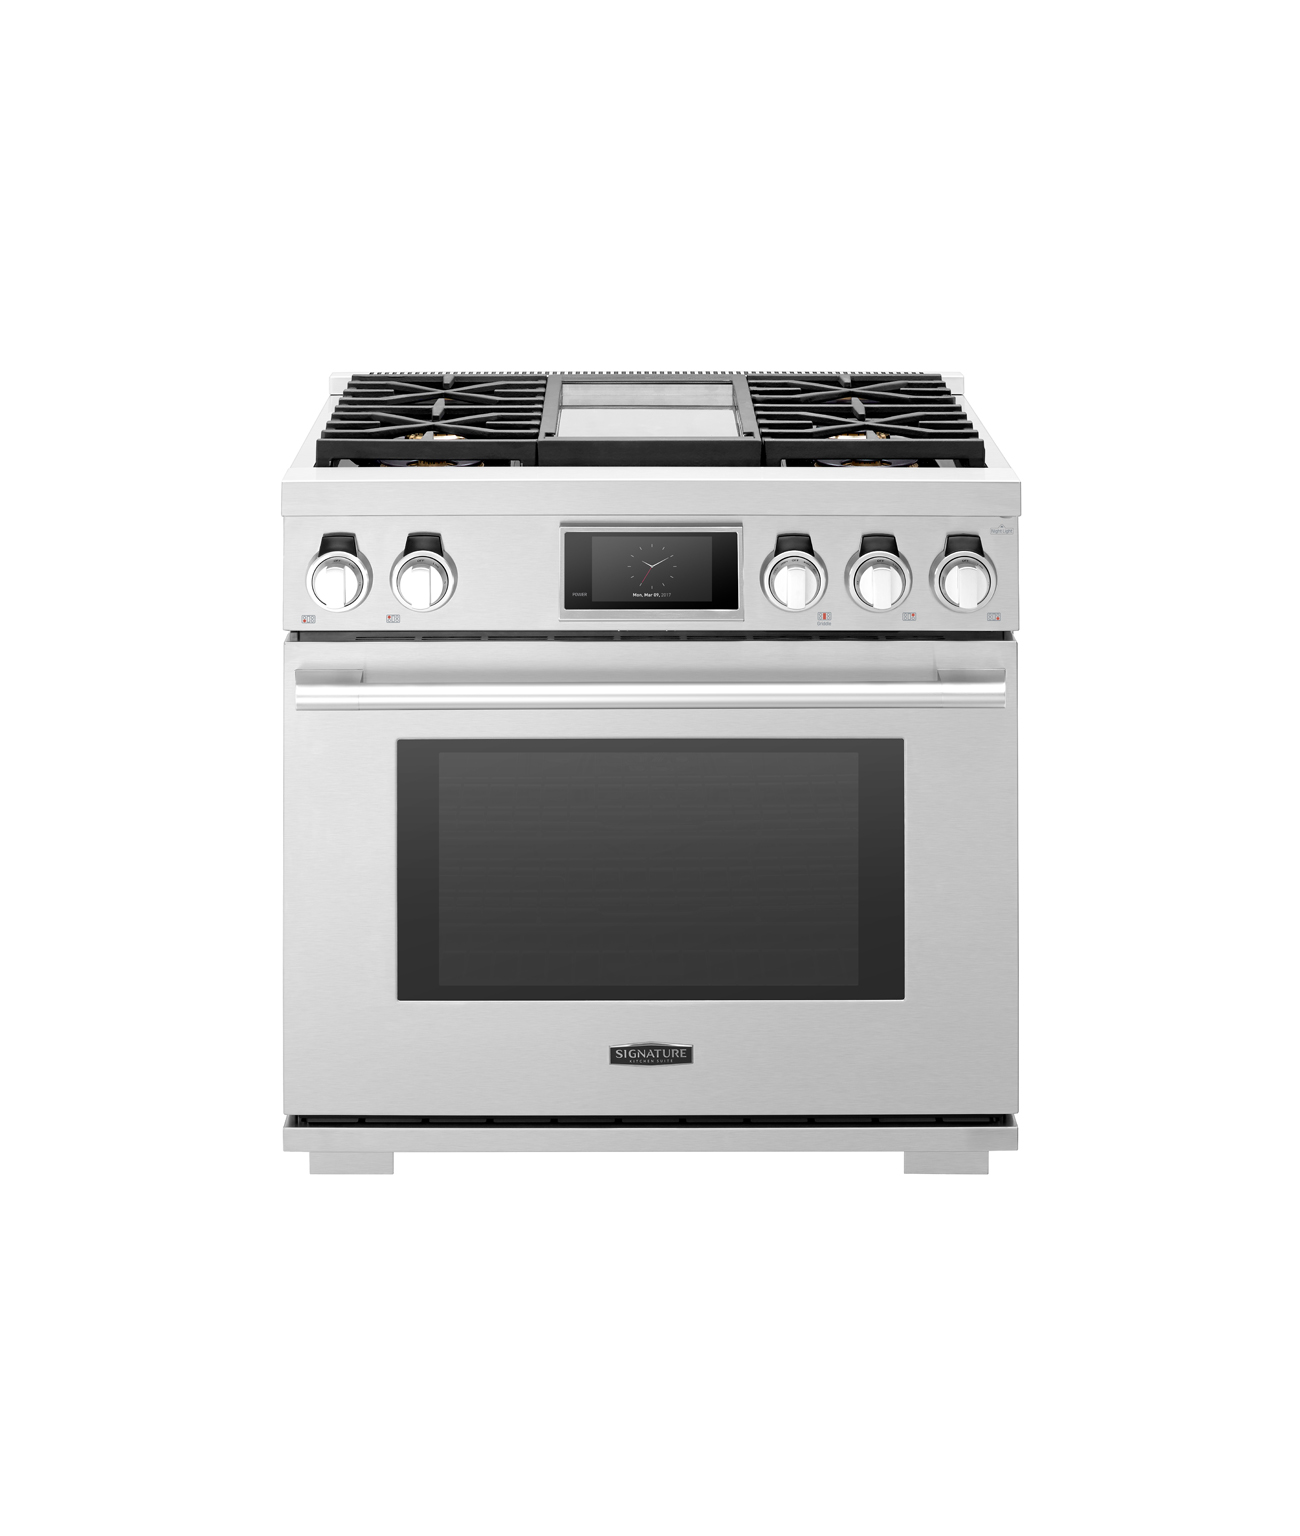 36-inch Dual-Fuel Pro Range with Steam Assist Oven and Griddle from Signature Kitchen Suite